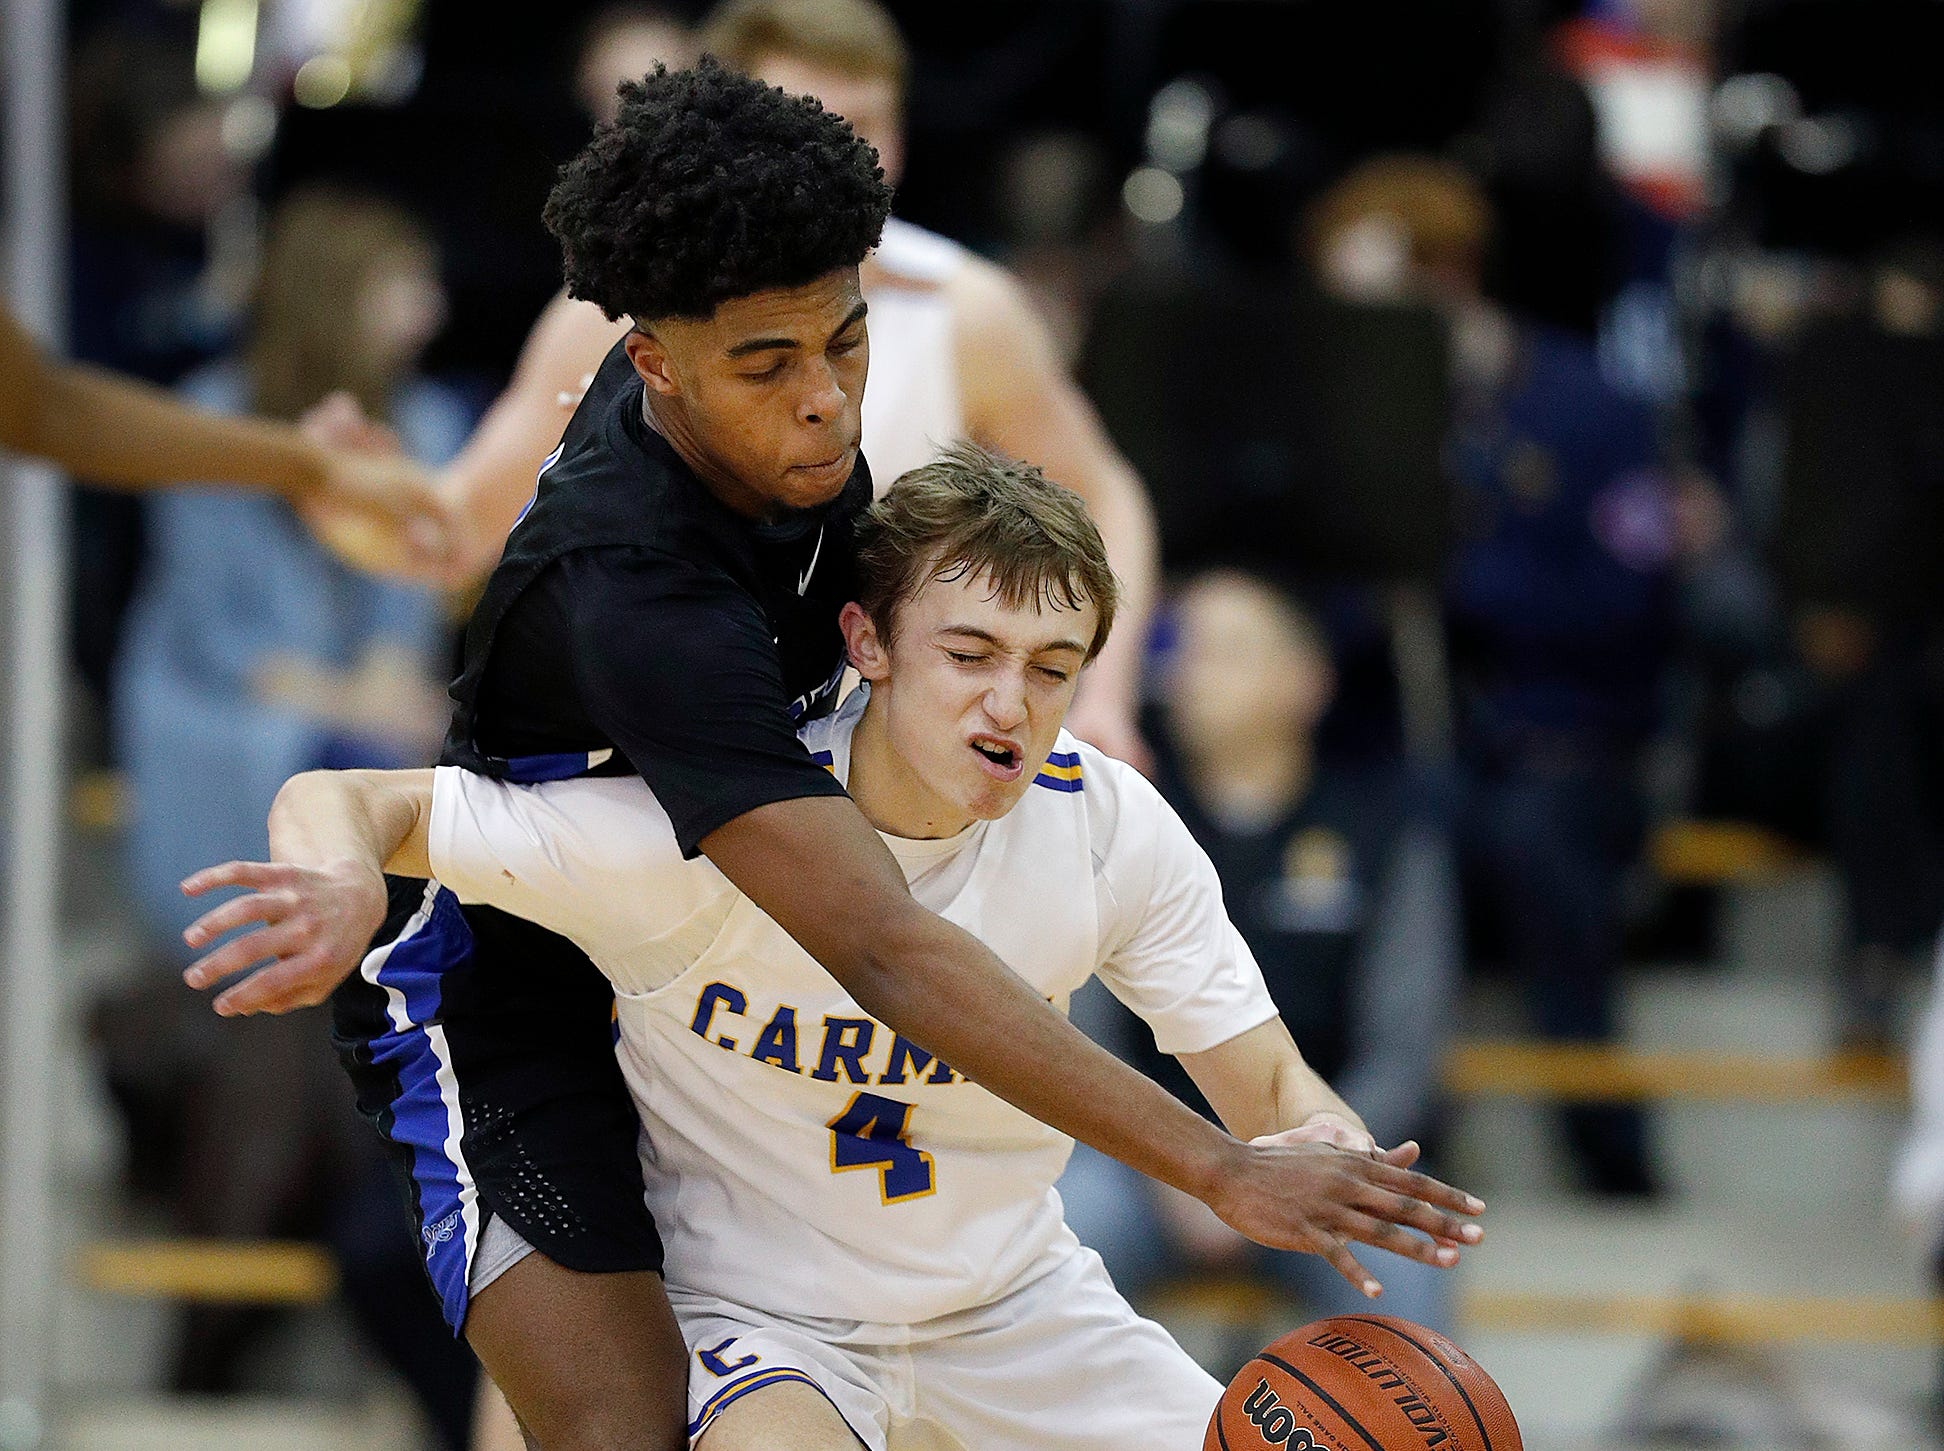 Hamilton Southeastern Royals Noah Smith (1) attempts to steal the ball from /c4/ in the second half of their game at Carmel High School on Friday, Feb. 8, 2019.